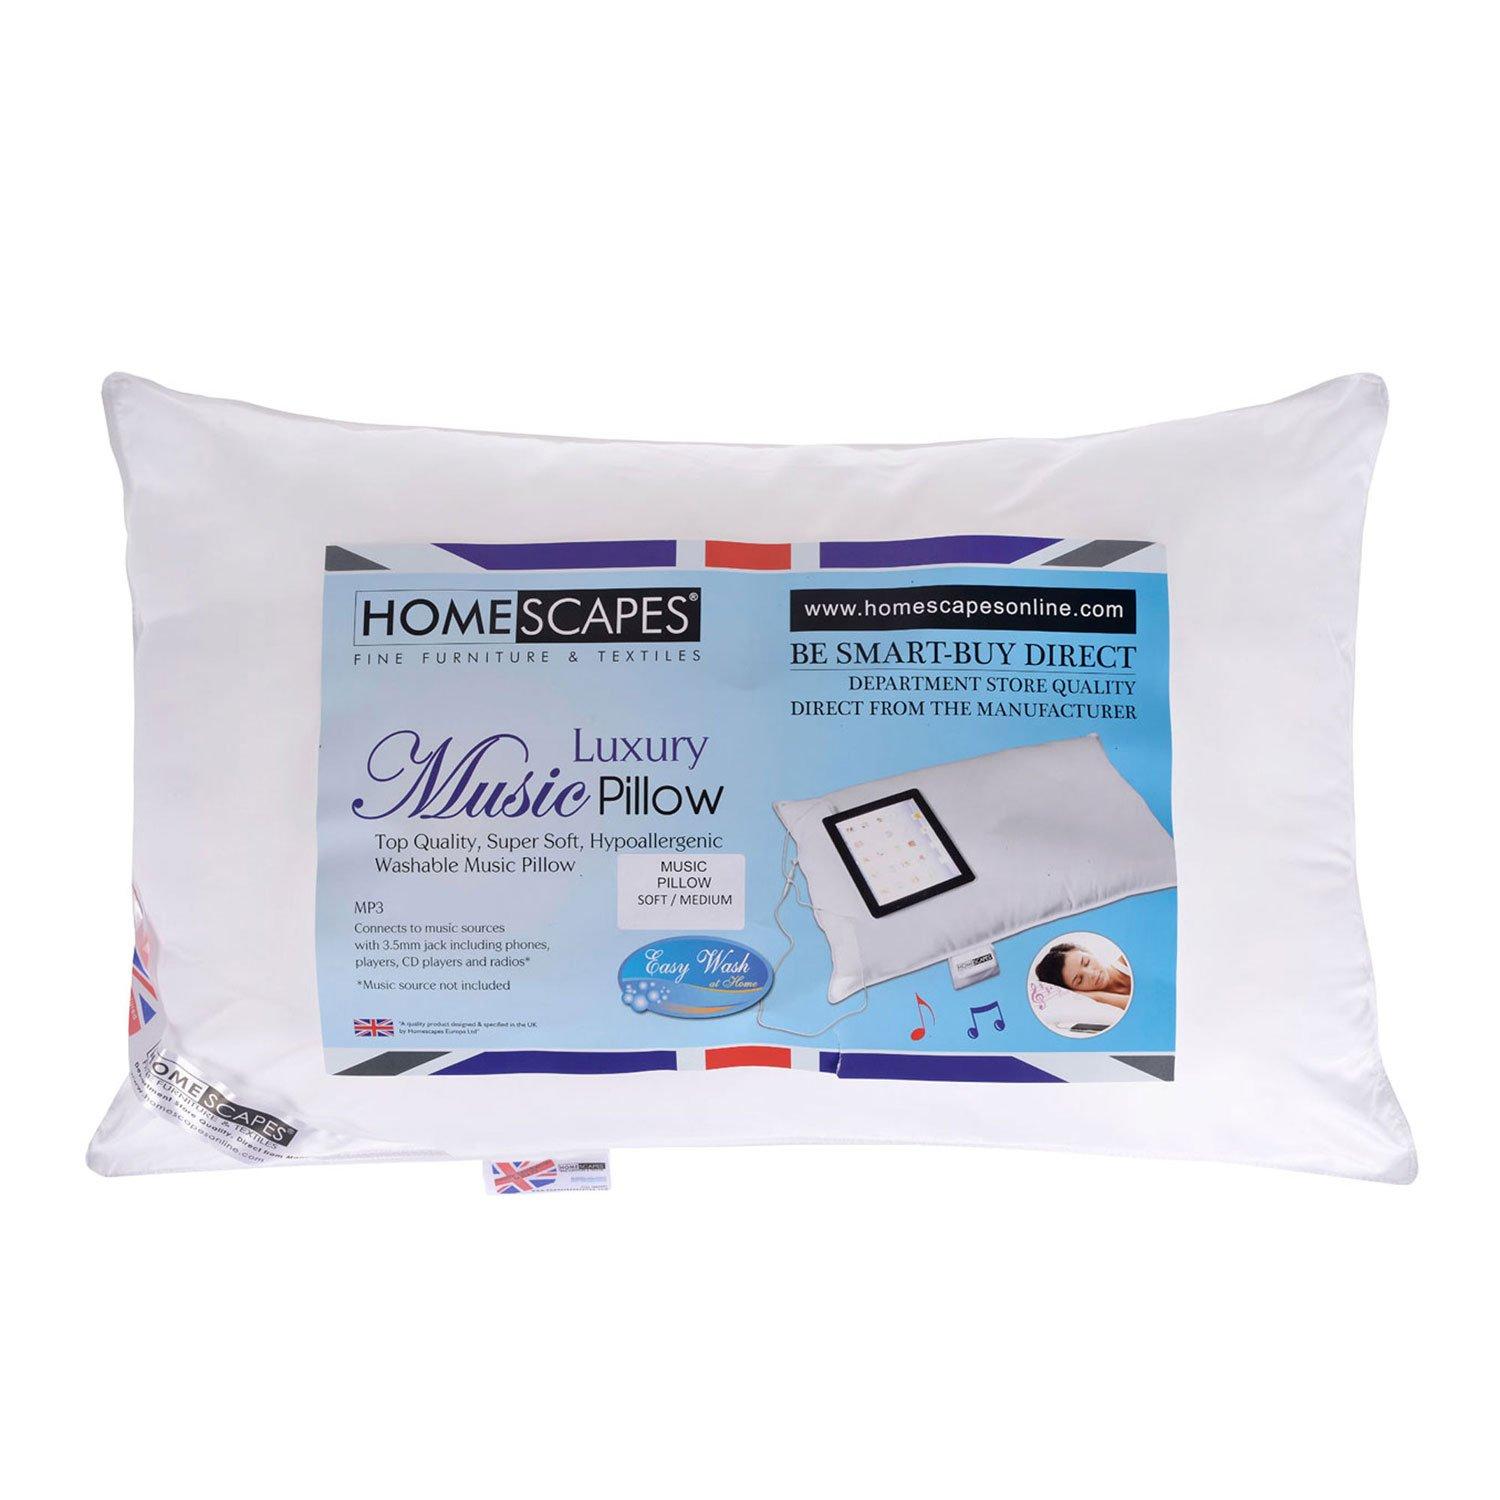 Ipod Pillow Homescapes Washable Music Pillow Top Quality Super Microfibre